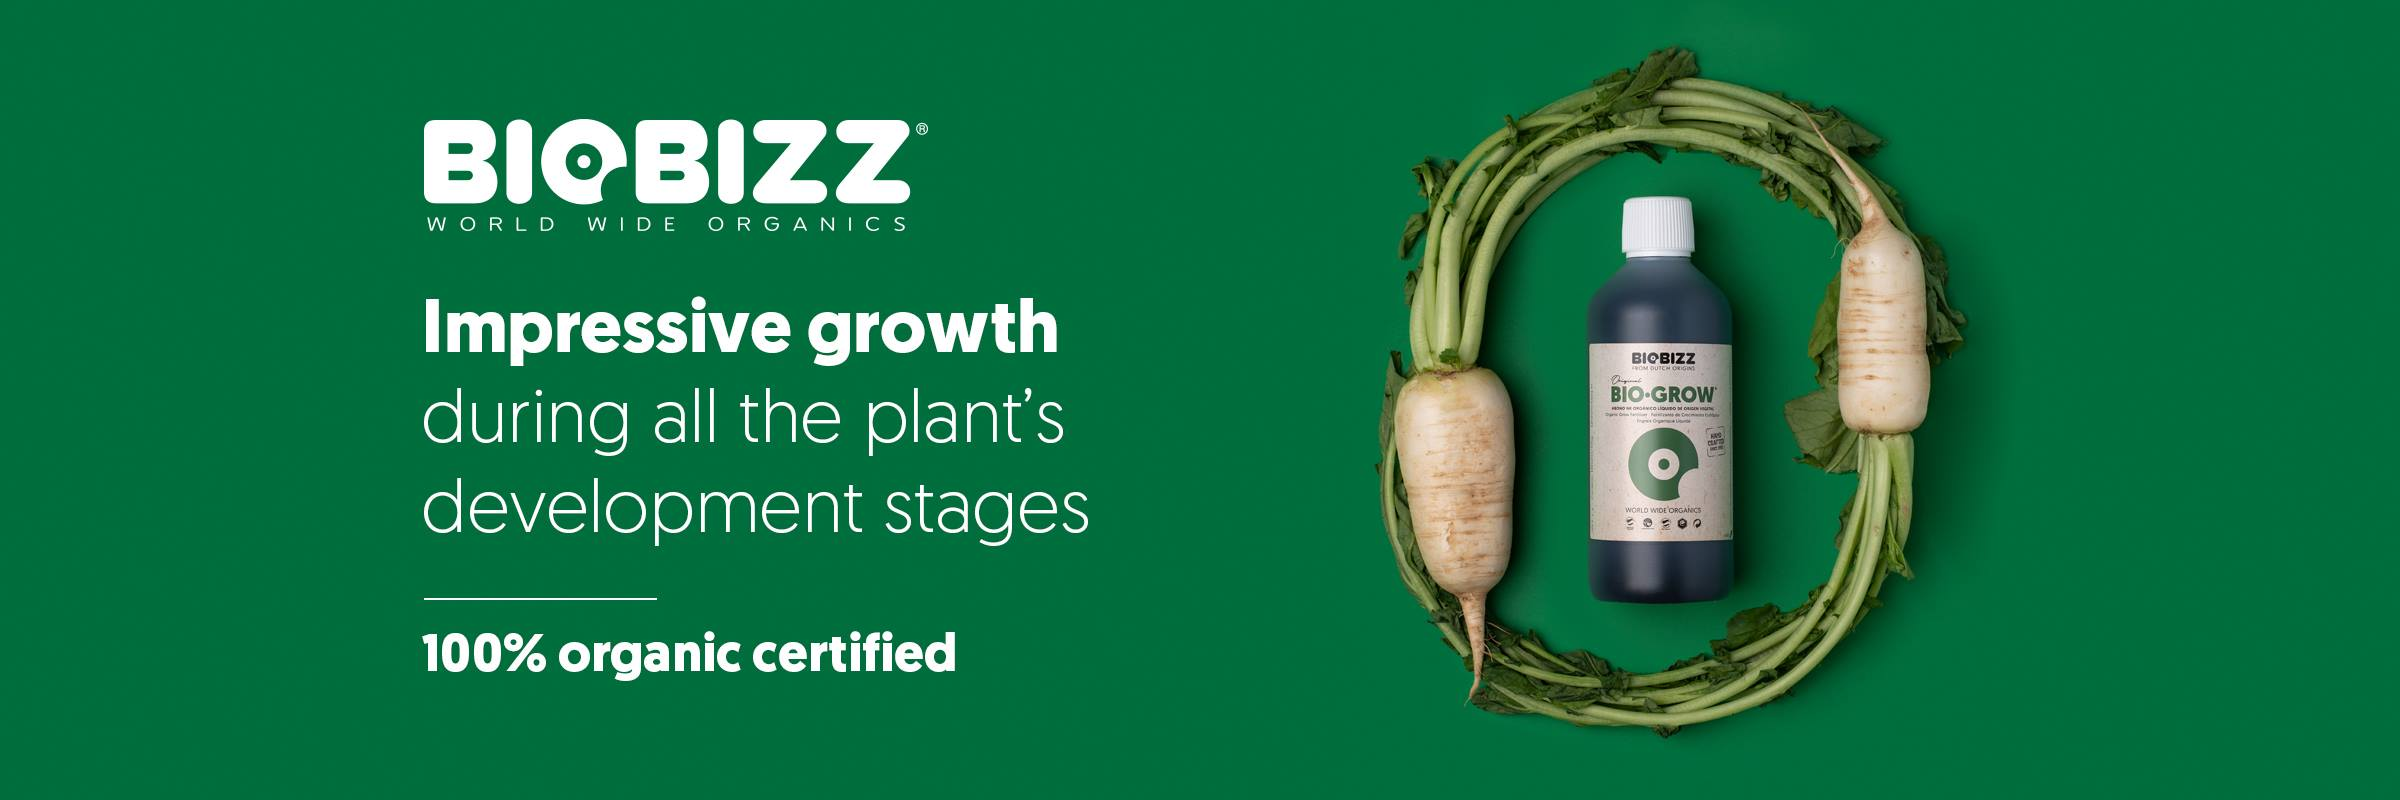 Biobizz Bio-Grow : 100% Organic Fertiliser